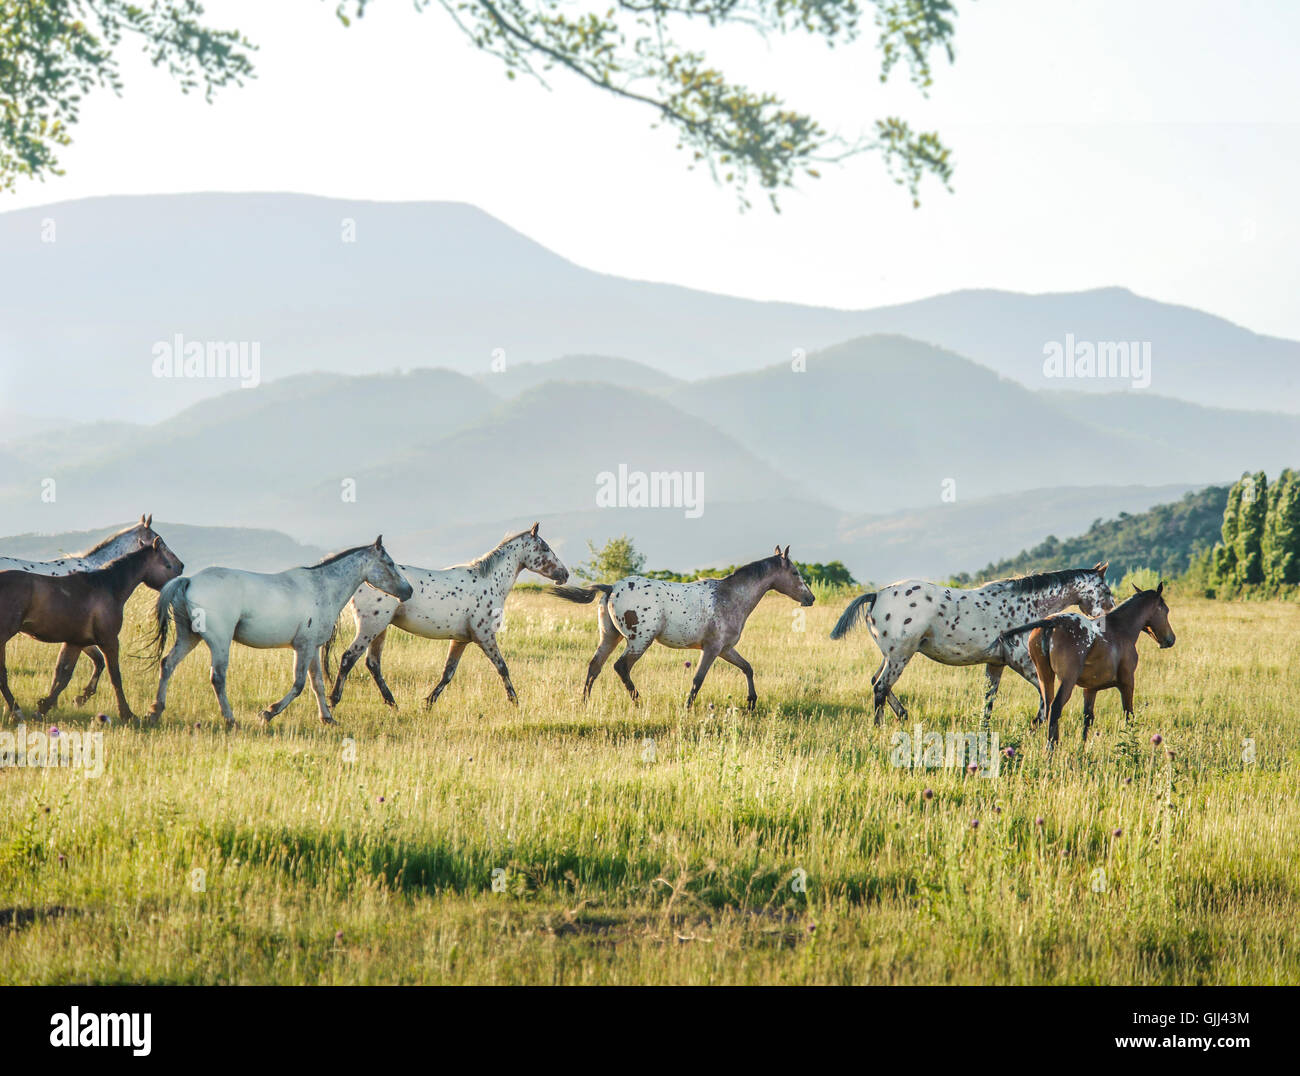 Tiger Horse herd runs across tall grass meadow with misty mountain range in background.  Tiger horses are gaited, - Stock Image